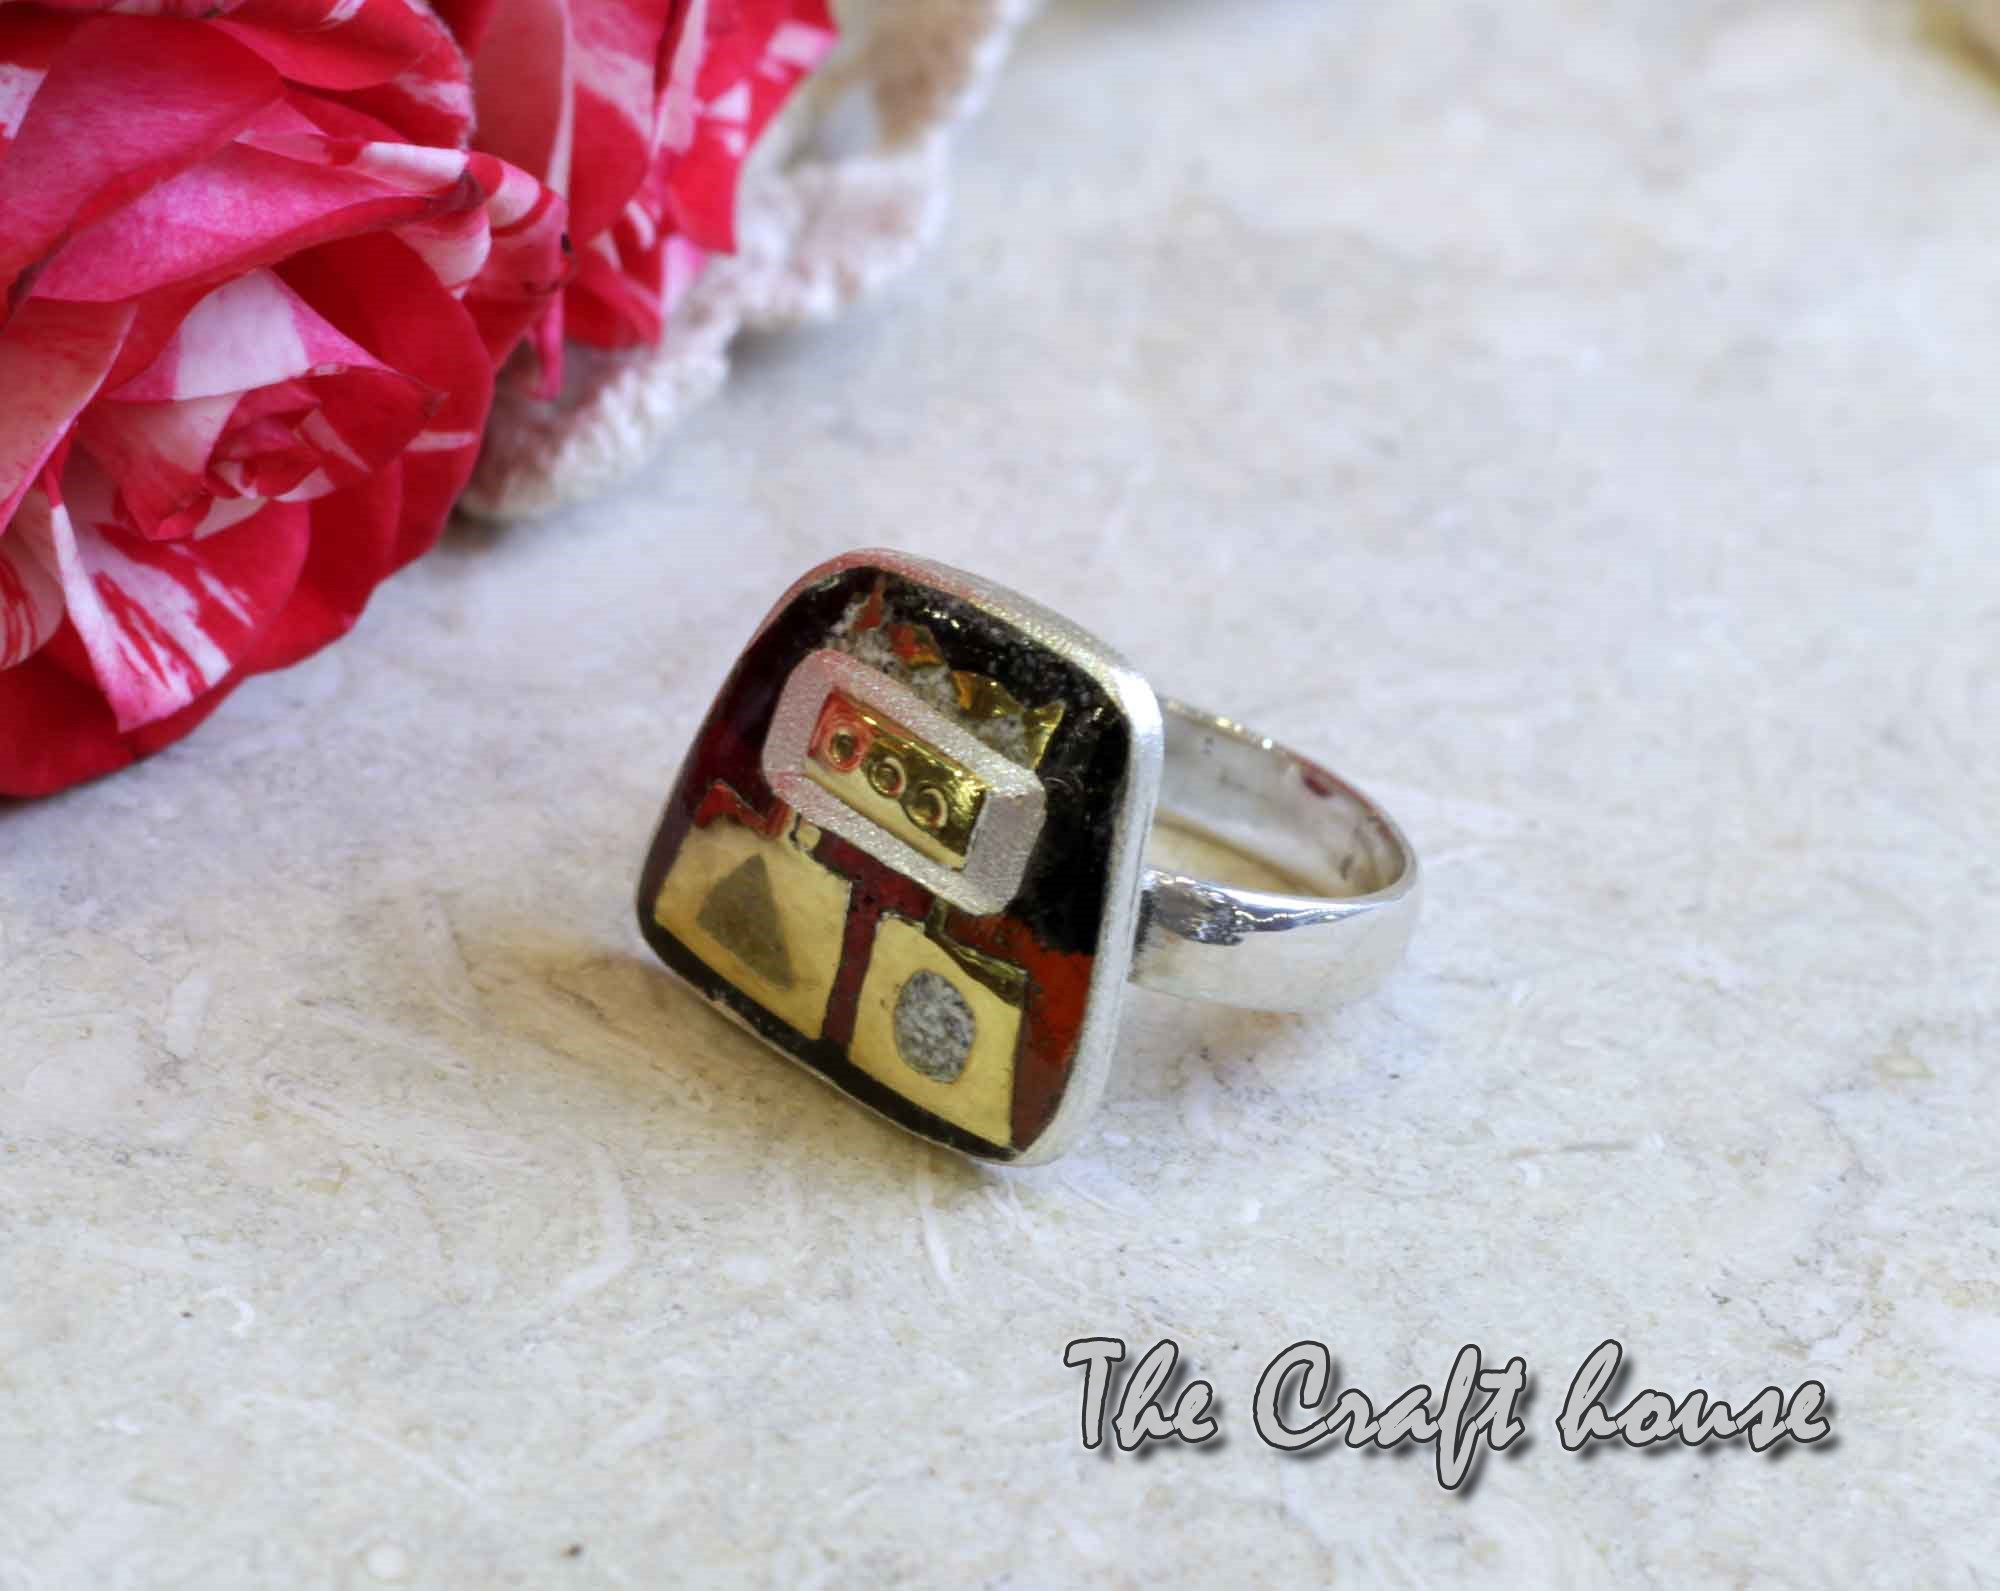 Silver ring with enamel & gold-plating